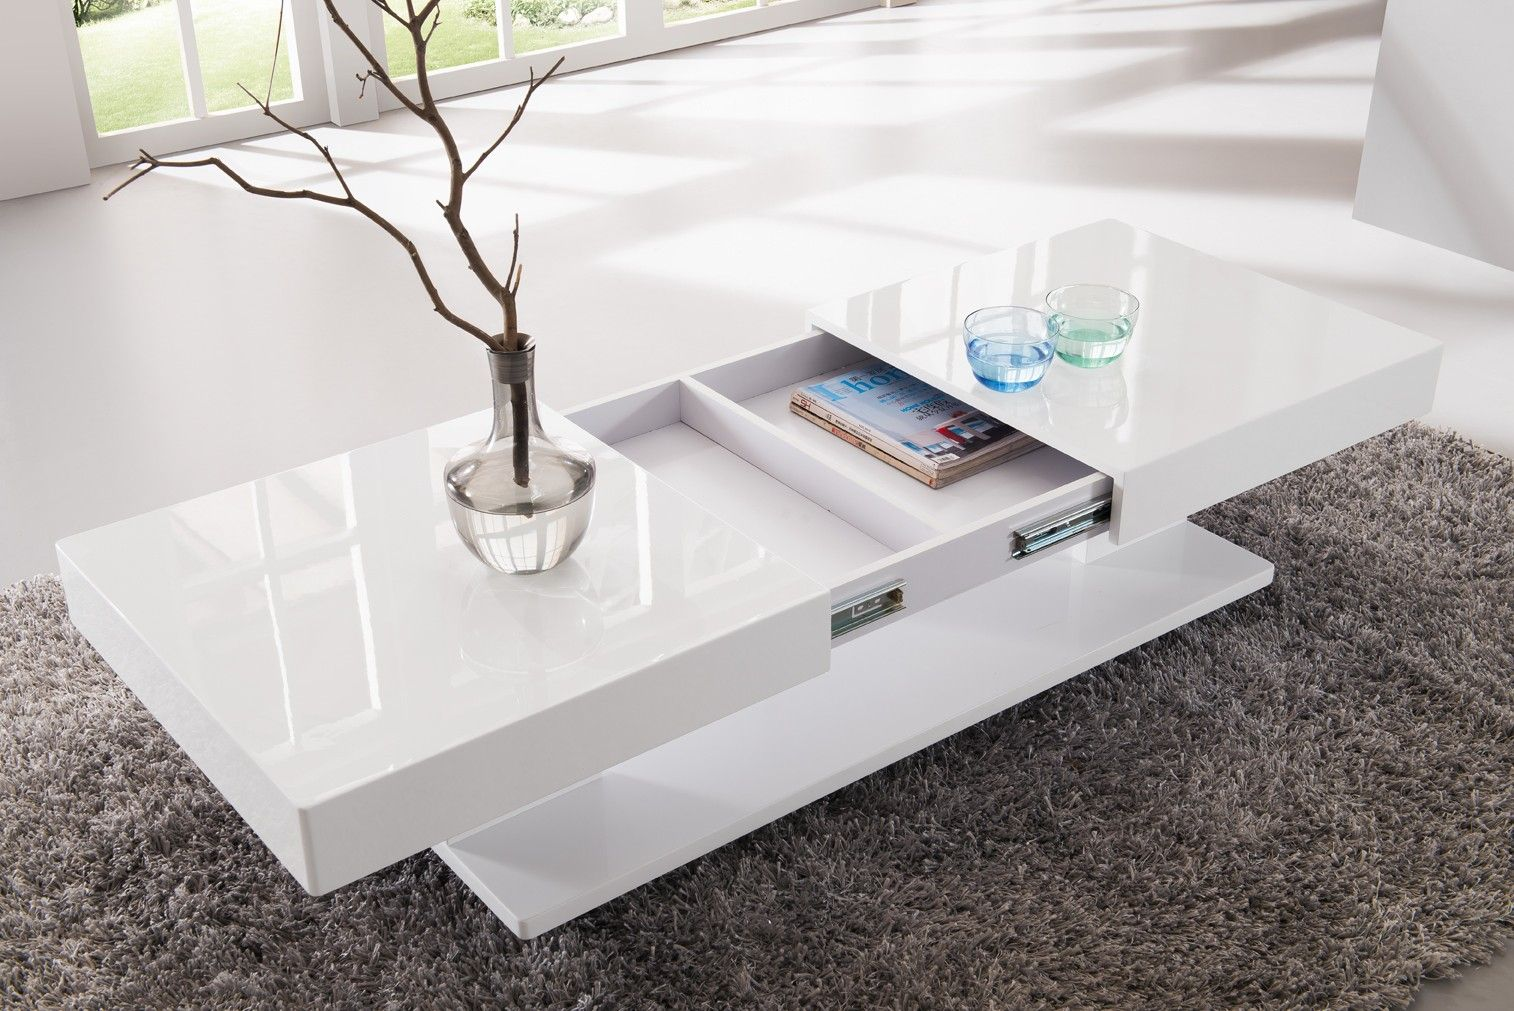 Table Basse Design Blanc Laque Avec Rangements Et Plateaux Coulissants Eva Table De Salon Moderne Table Basse Blanche Table De Salon